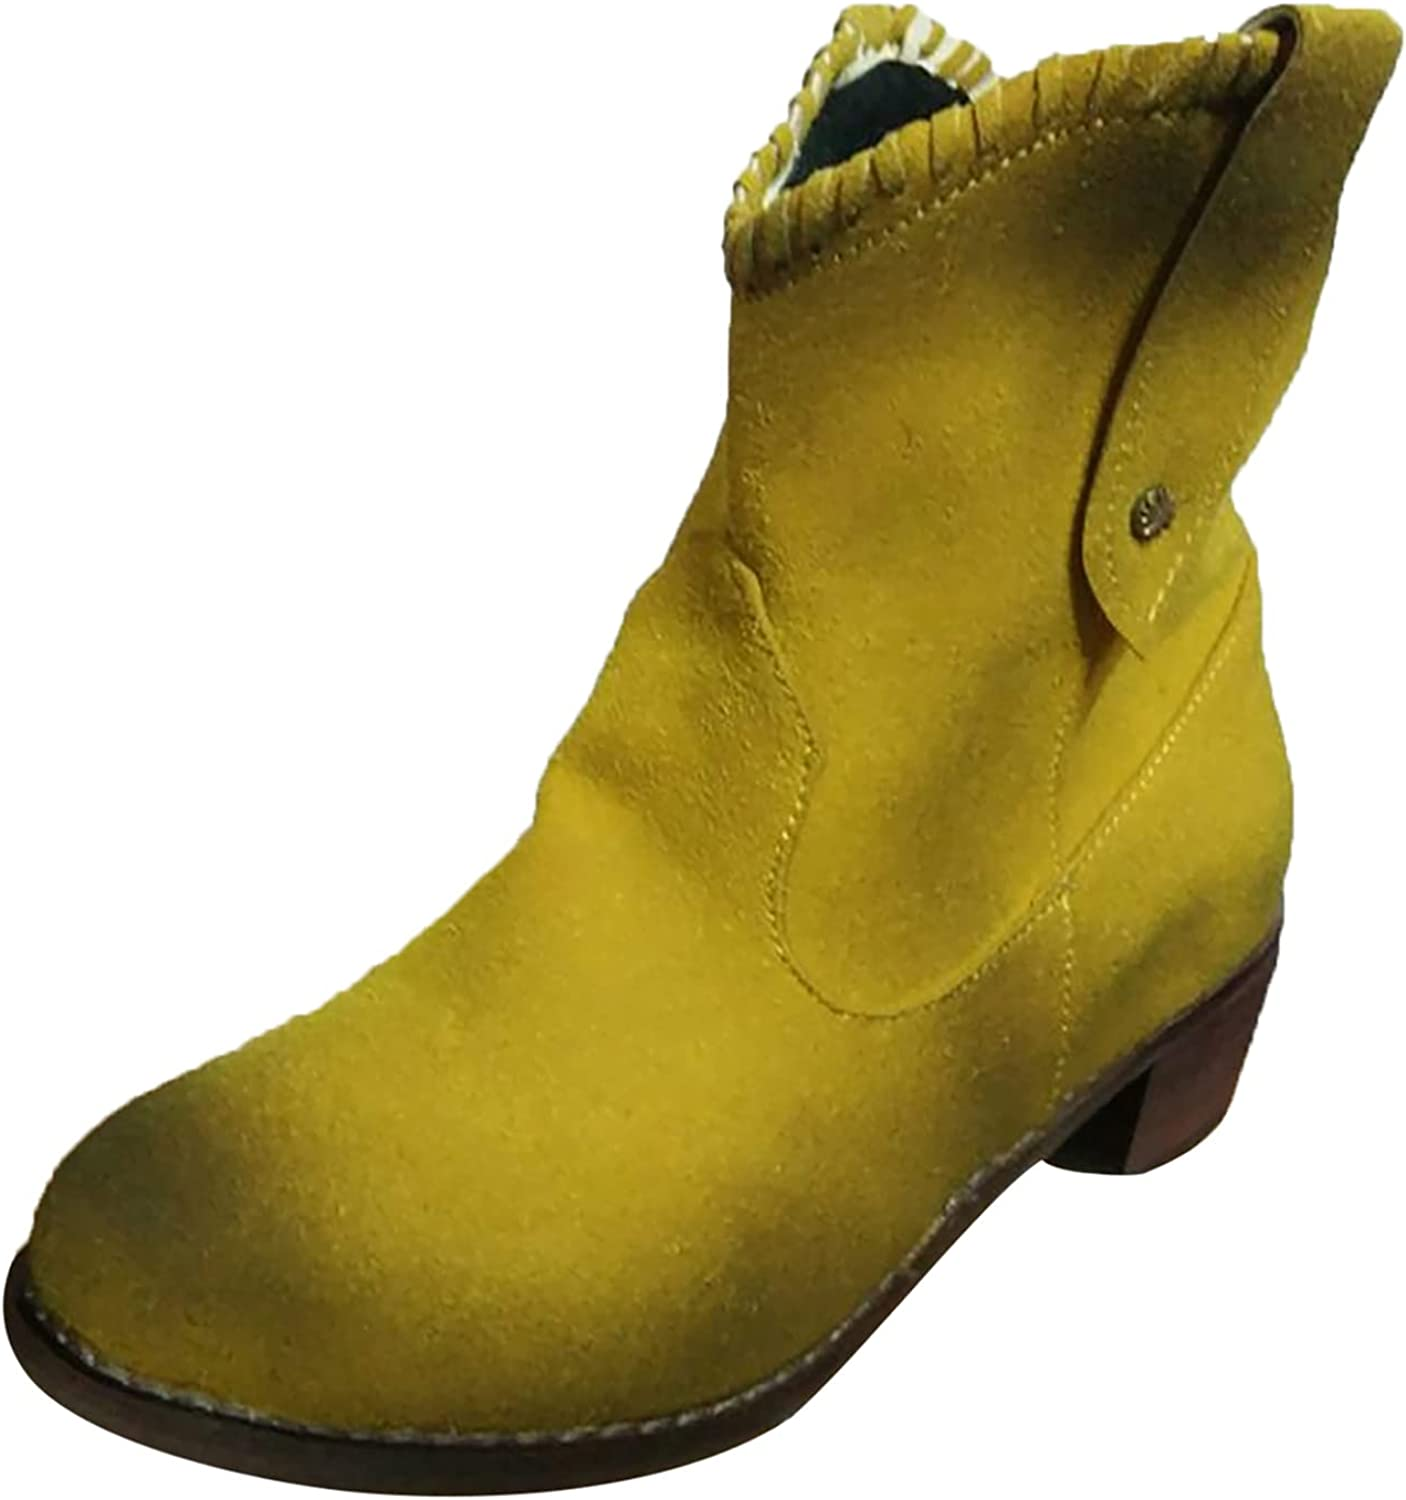 Pzhhzpingg Sale Cowboy Boots for Women Fashion Heel Solid with Retro Award